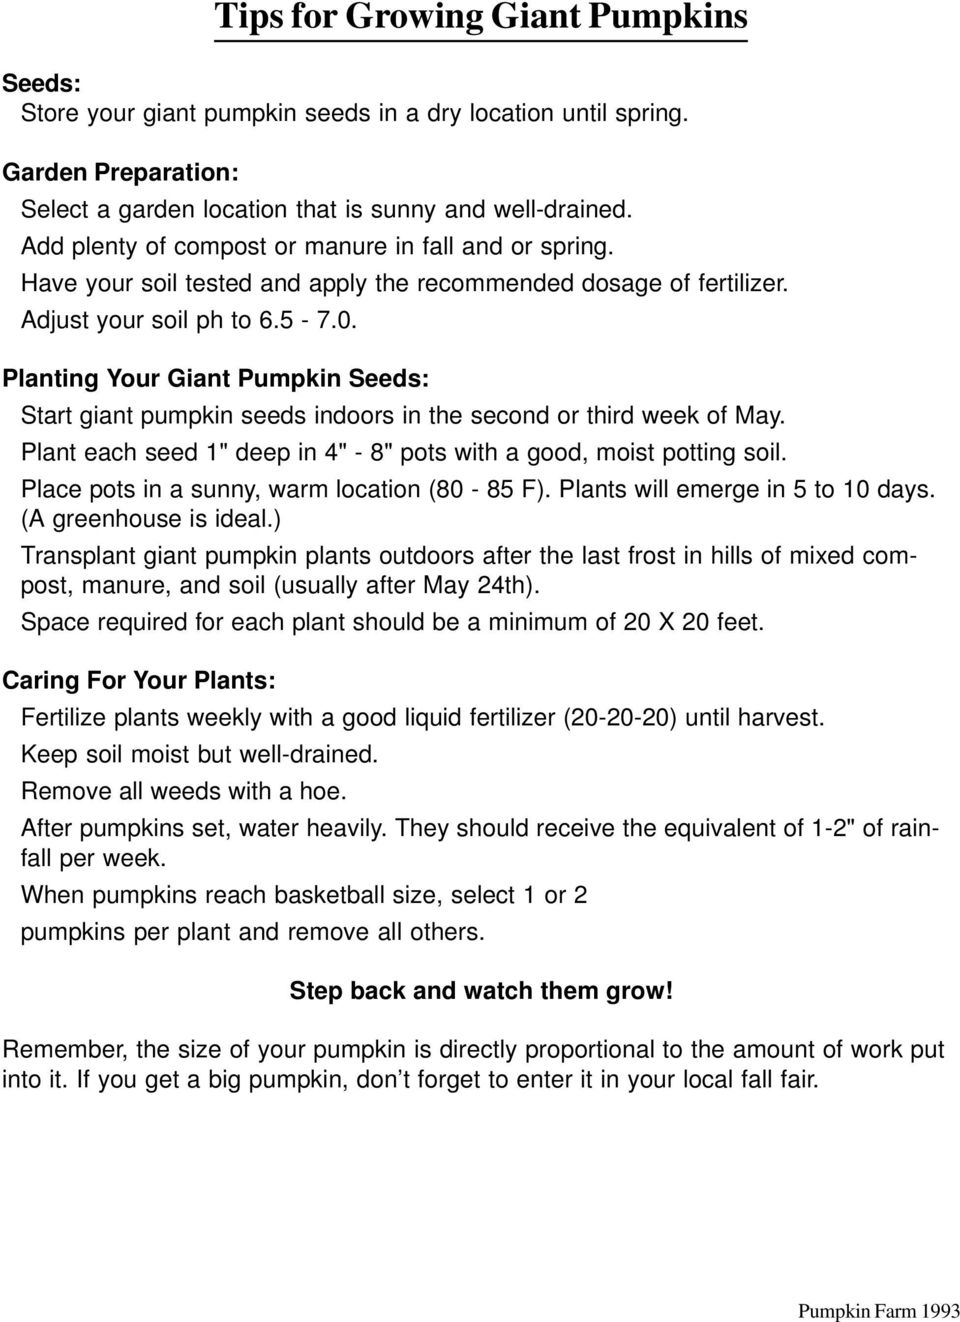 "Planting Your Giant Pumpkin Seeds: Start giant pumpkin seeds indoors in the second or third week of May. Plant each seed 1"" deep in 4"" - 8"" pots with a good, moist potting soil."